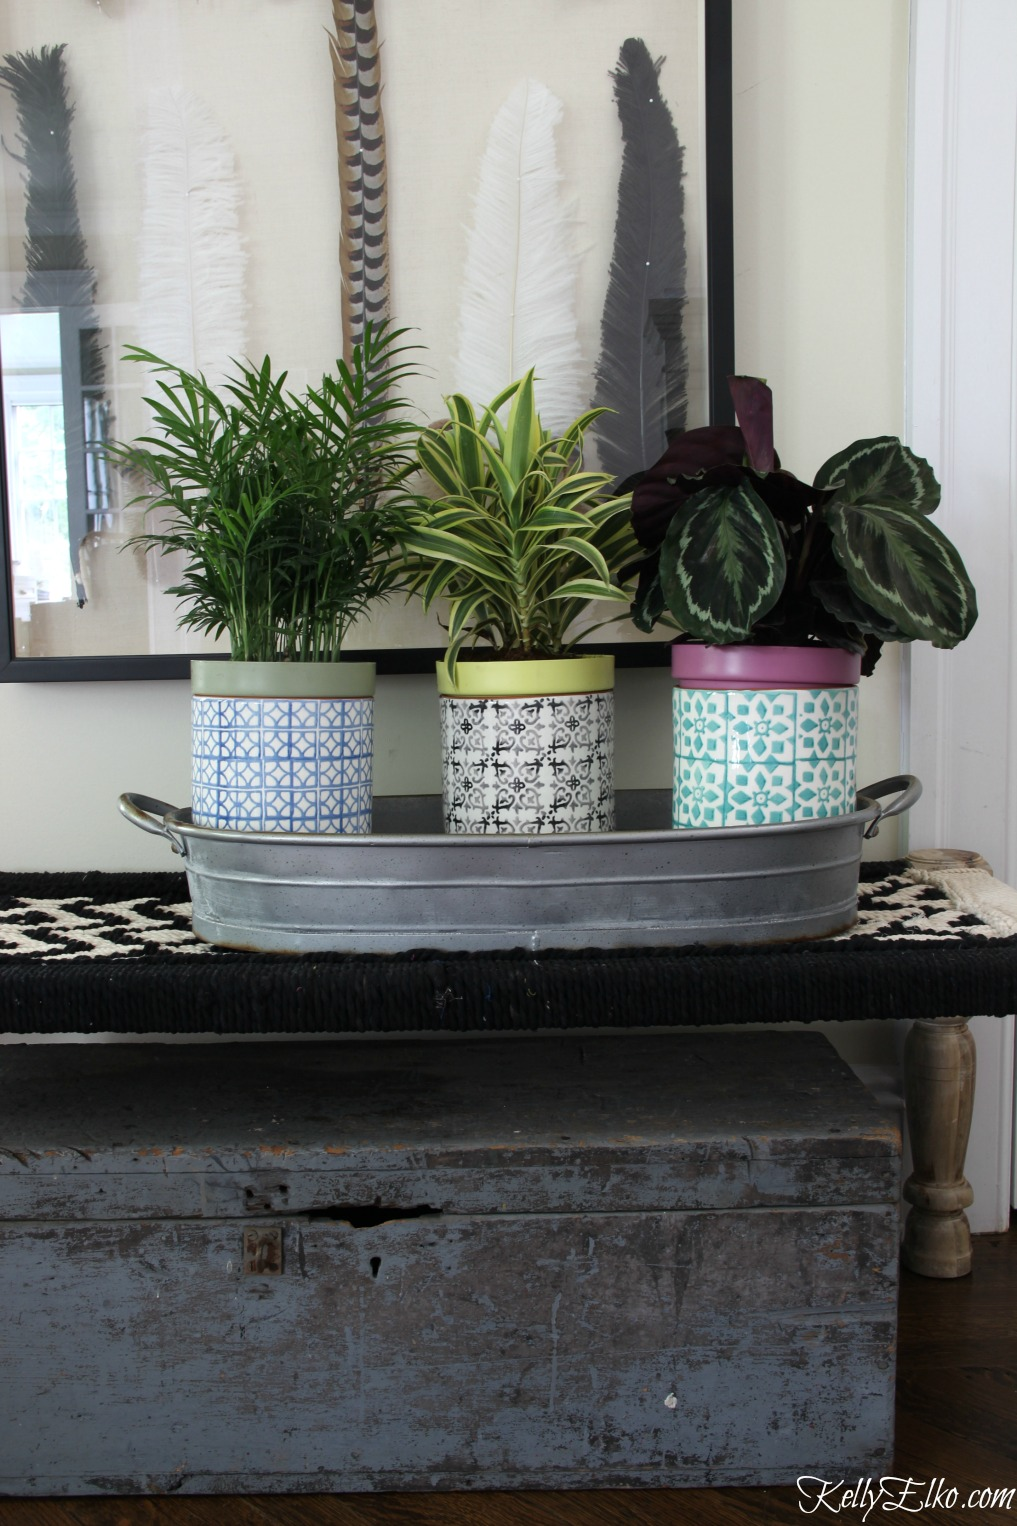 Love this trio of indoor houseplants in colorful pottery kellyelko.com